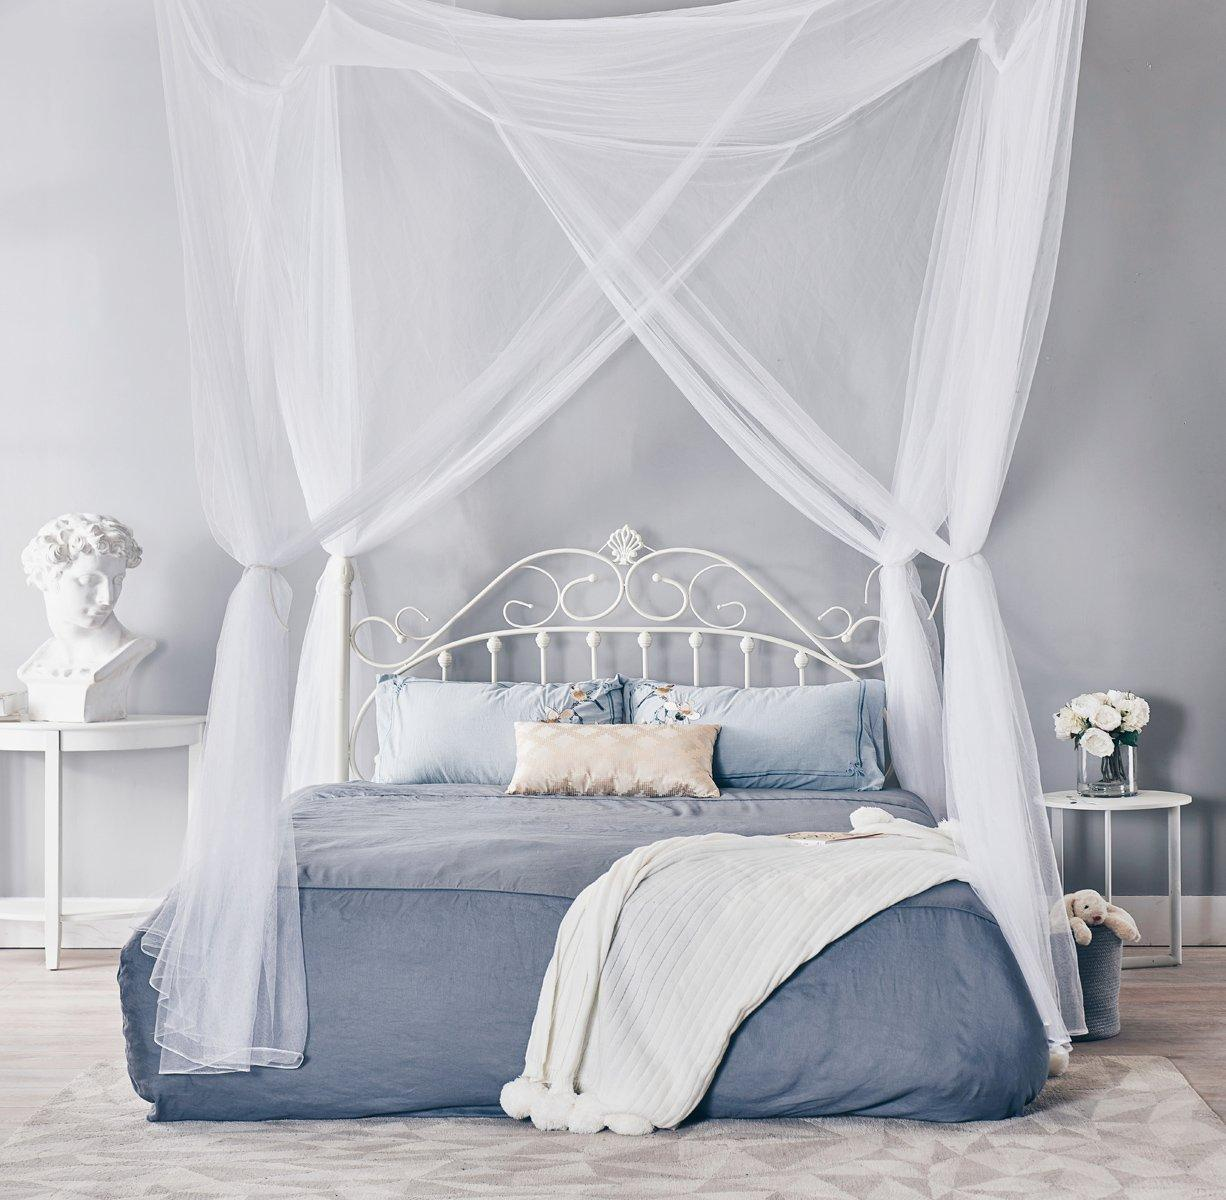 Interiors Ciel De Lit 190x210x240cm european style 4 corner post bed canopy mosquito net full  netting bedding ciel de lit moustiquaire beds kids room decoration baby